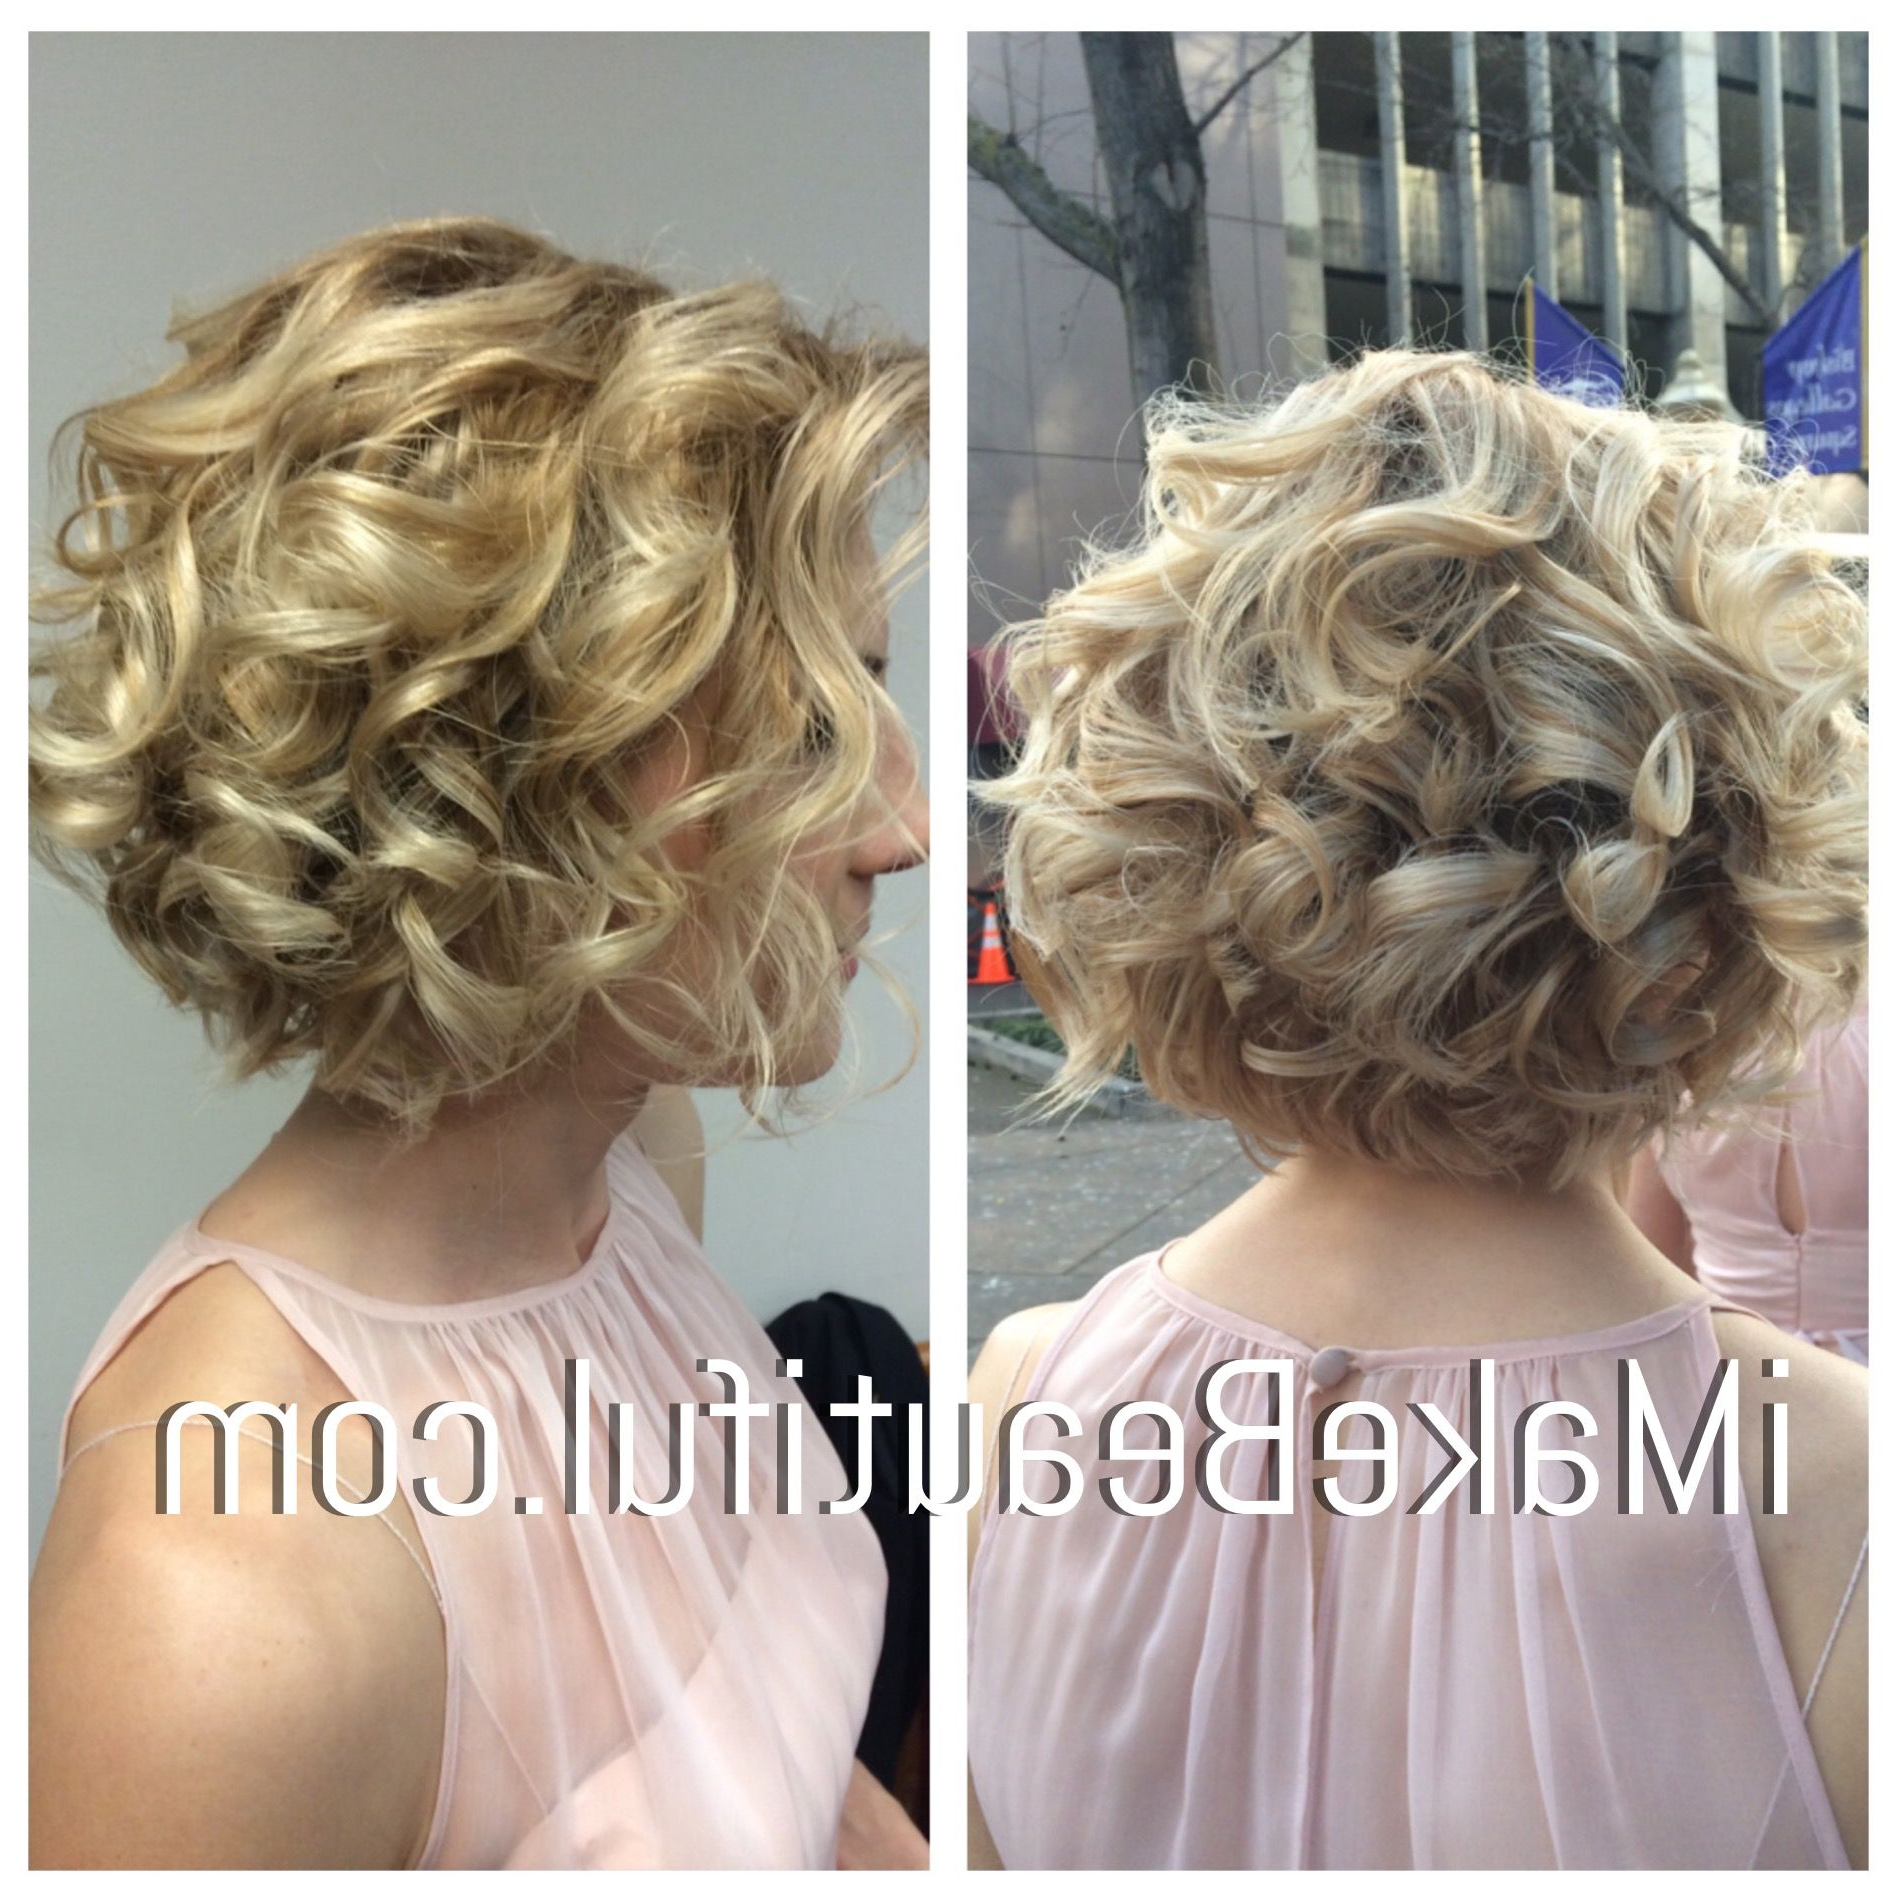 Most Recent Short Length Hairstyles Appear Longer For Wedding Throughout Bridal Hair For Short Hair (View 11 of 20)